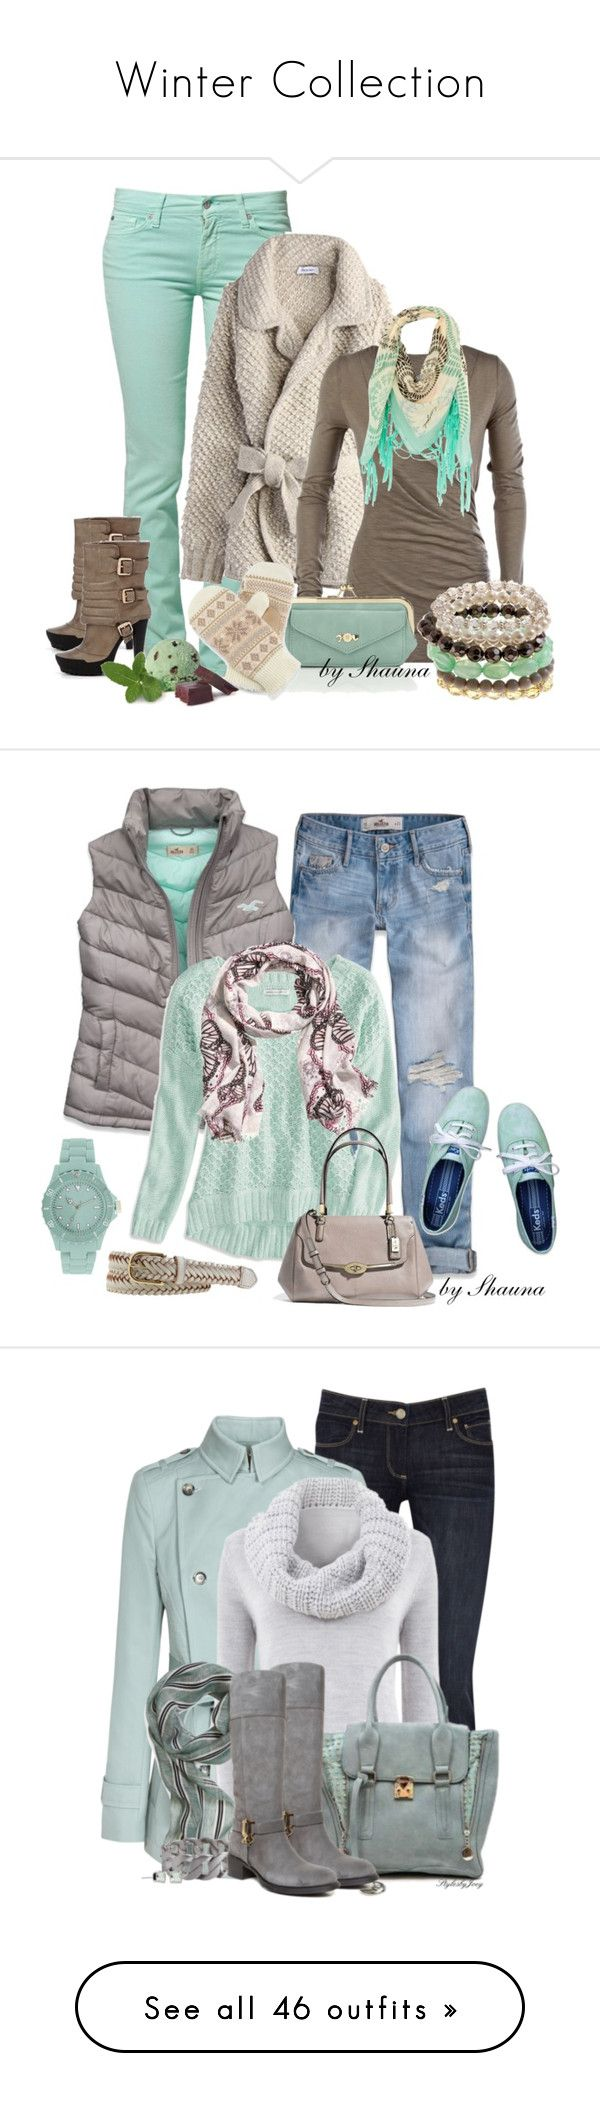 """Winter Collection"" by arjozwik1989 ❤ liked on Polyvore featuring мода, 7 For All Mankind, Desigual, New Look, Jean-Michel Cazabat, Accessorize, Isotoner, Hollister Co., American Eagle Outfitters и H&M"